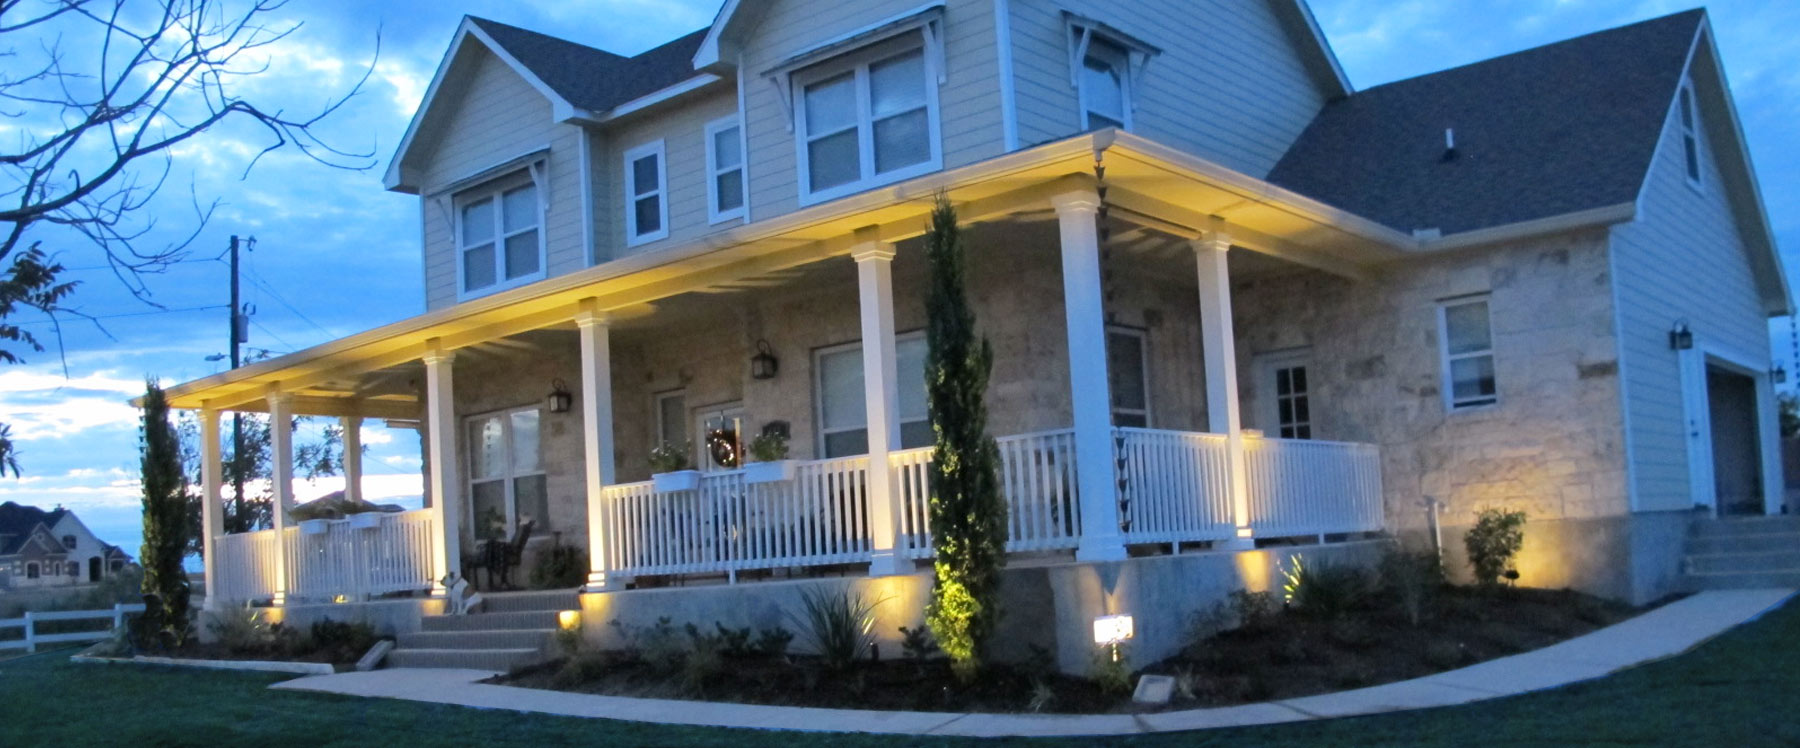 landscape lighting installer austin tx